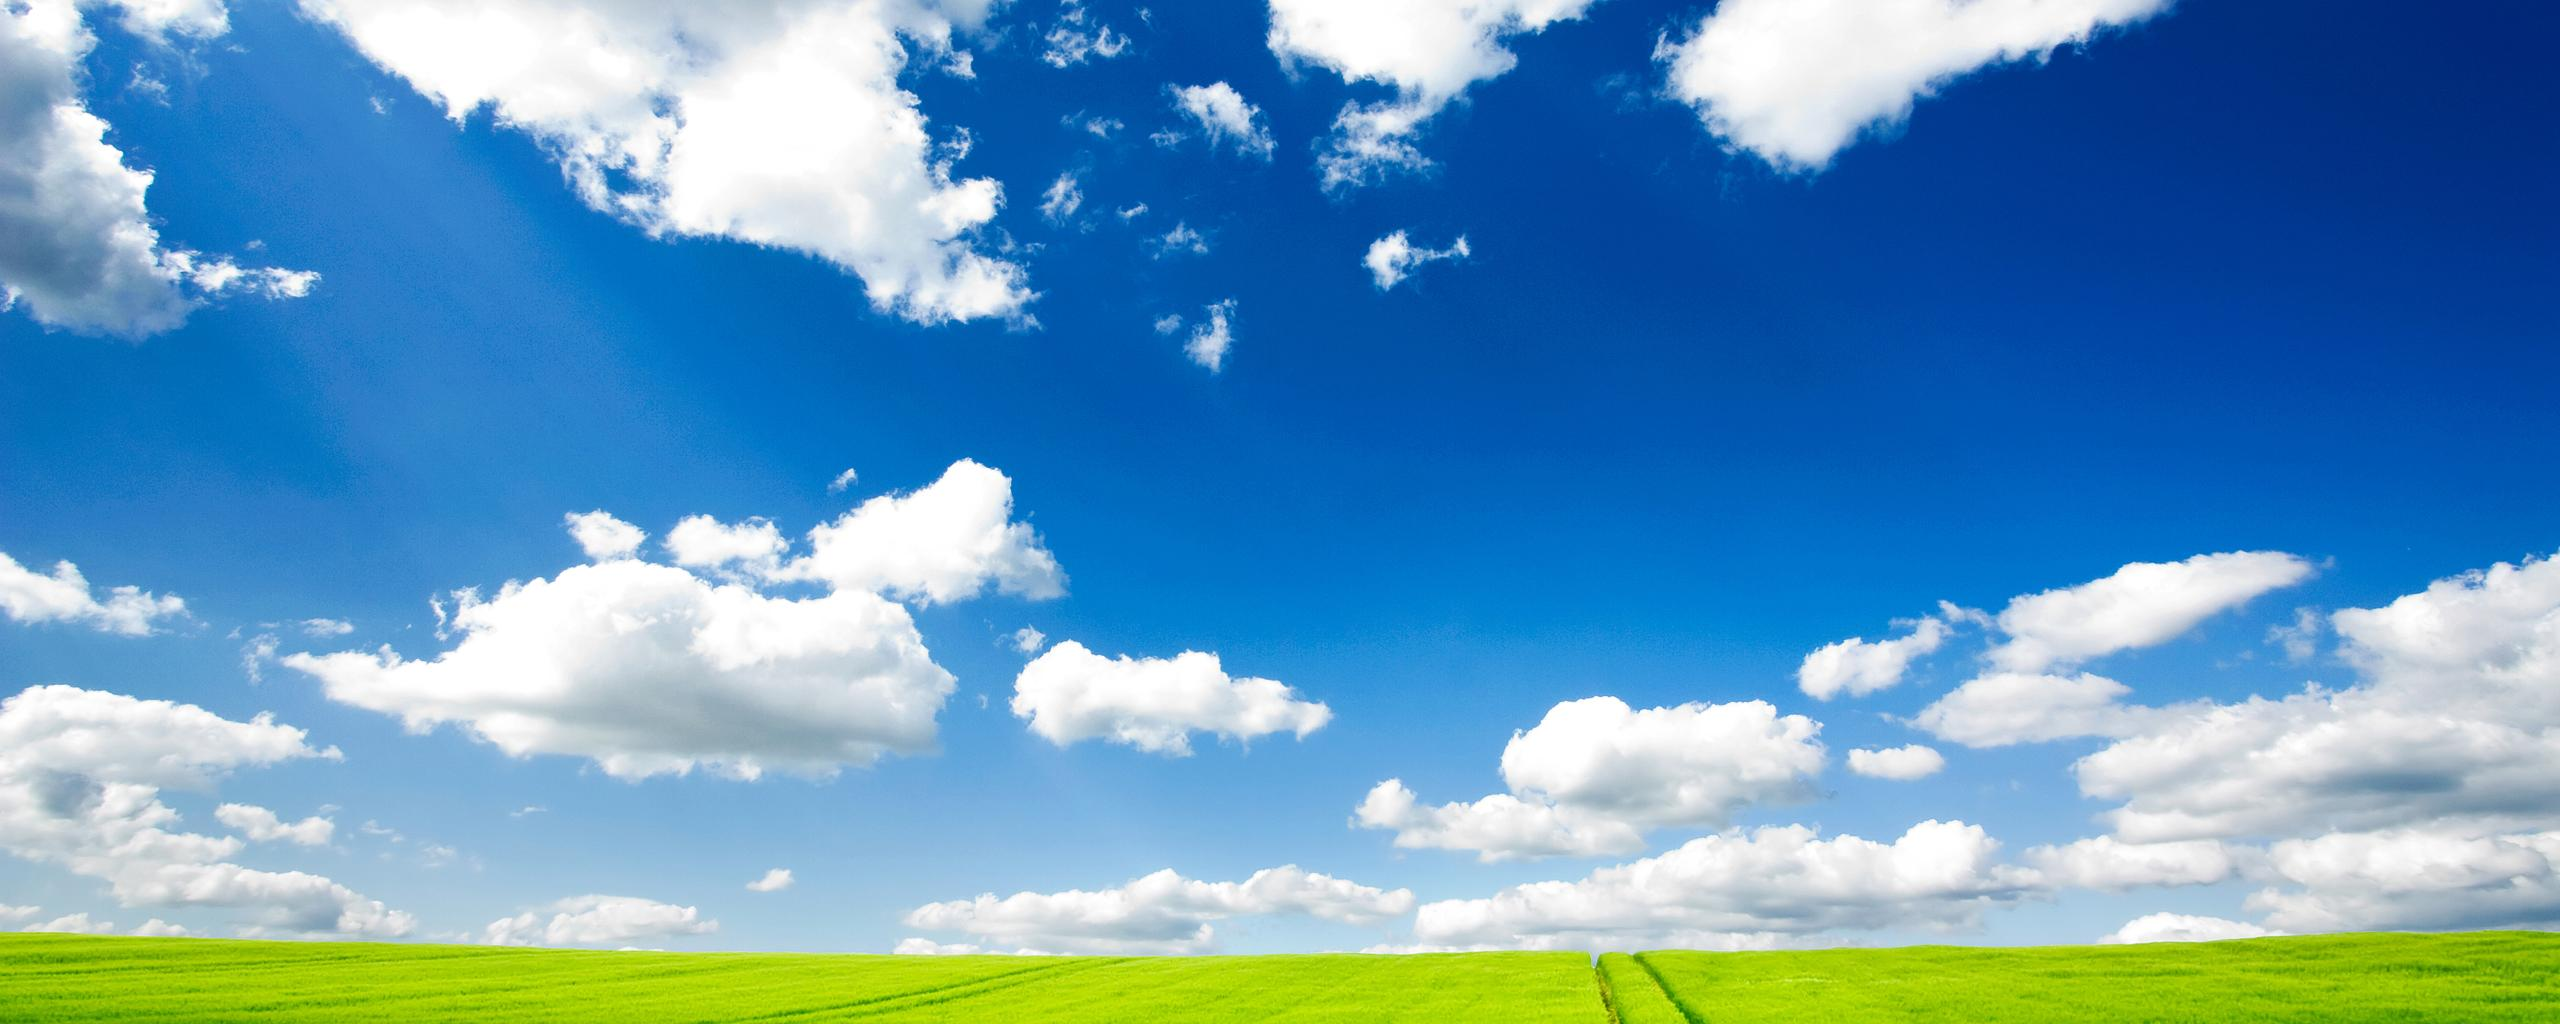 Free download Blue Sky Wallpapers [2560x1024] for your ...